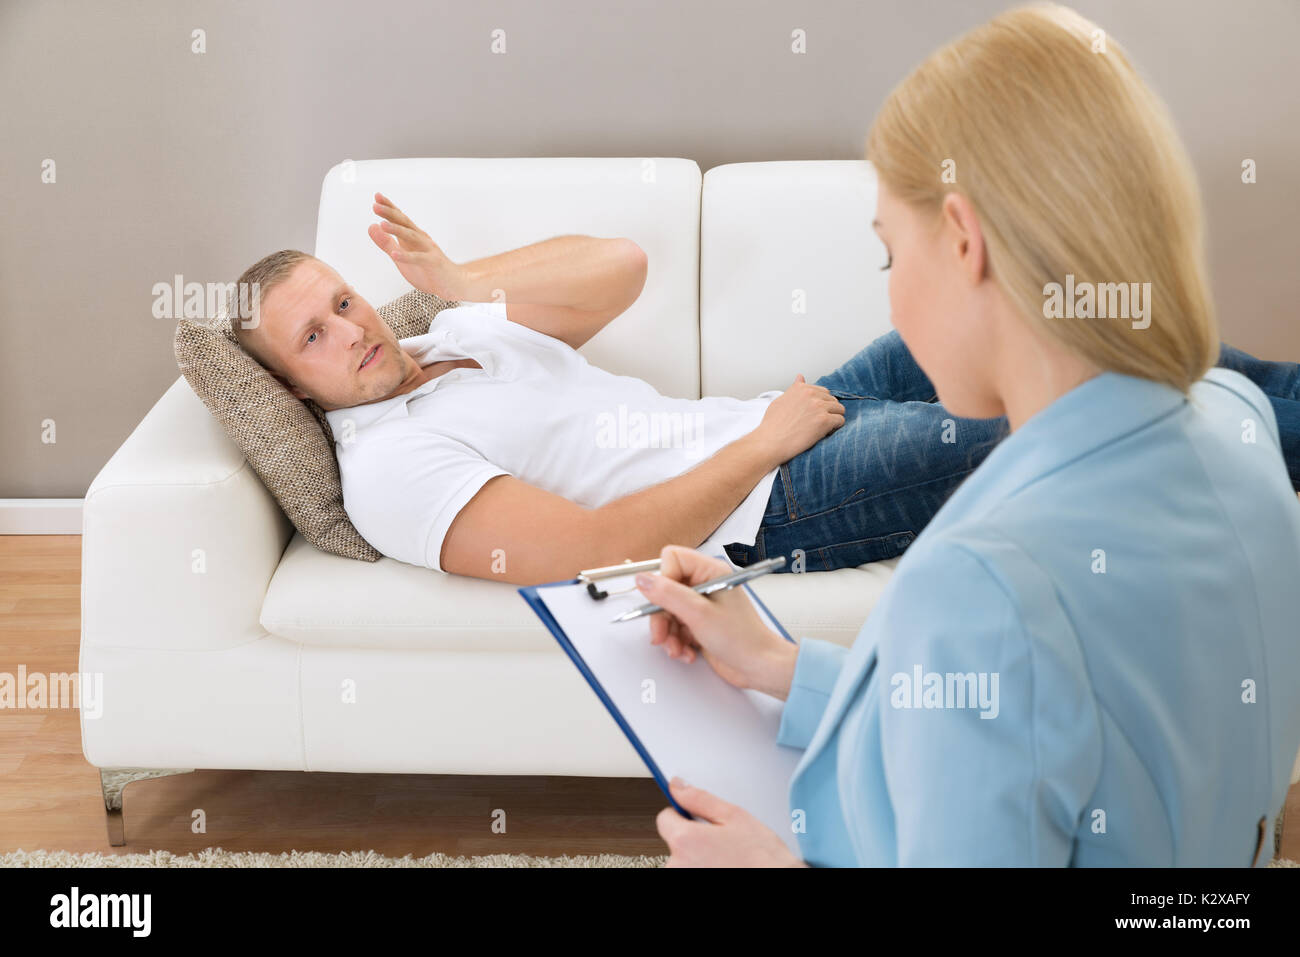 Female Psychologist Making Notes During Psychological Therapy Session - Stock Image